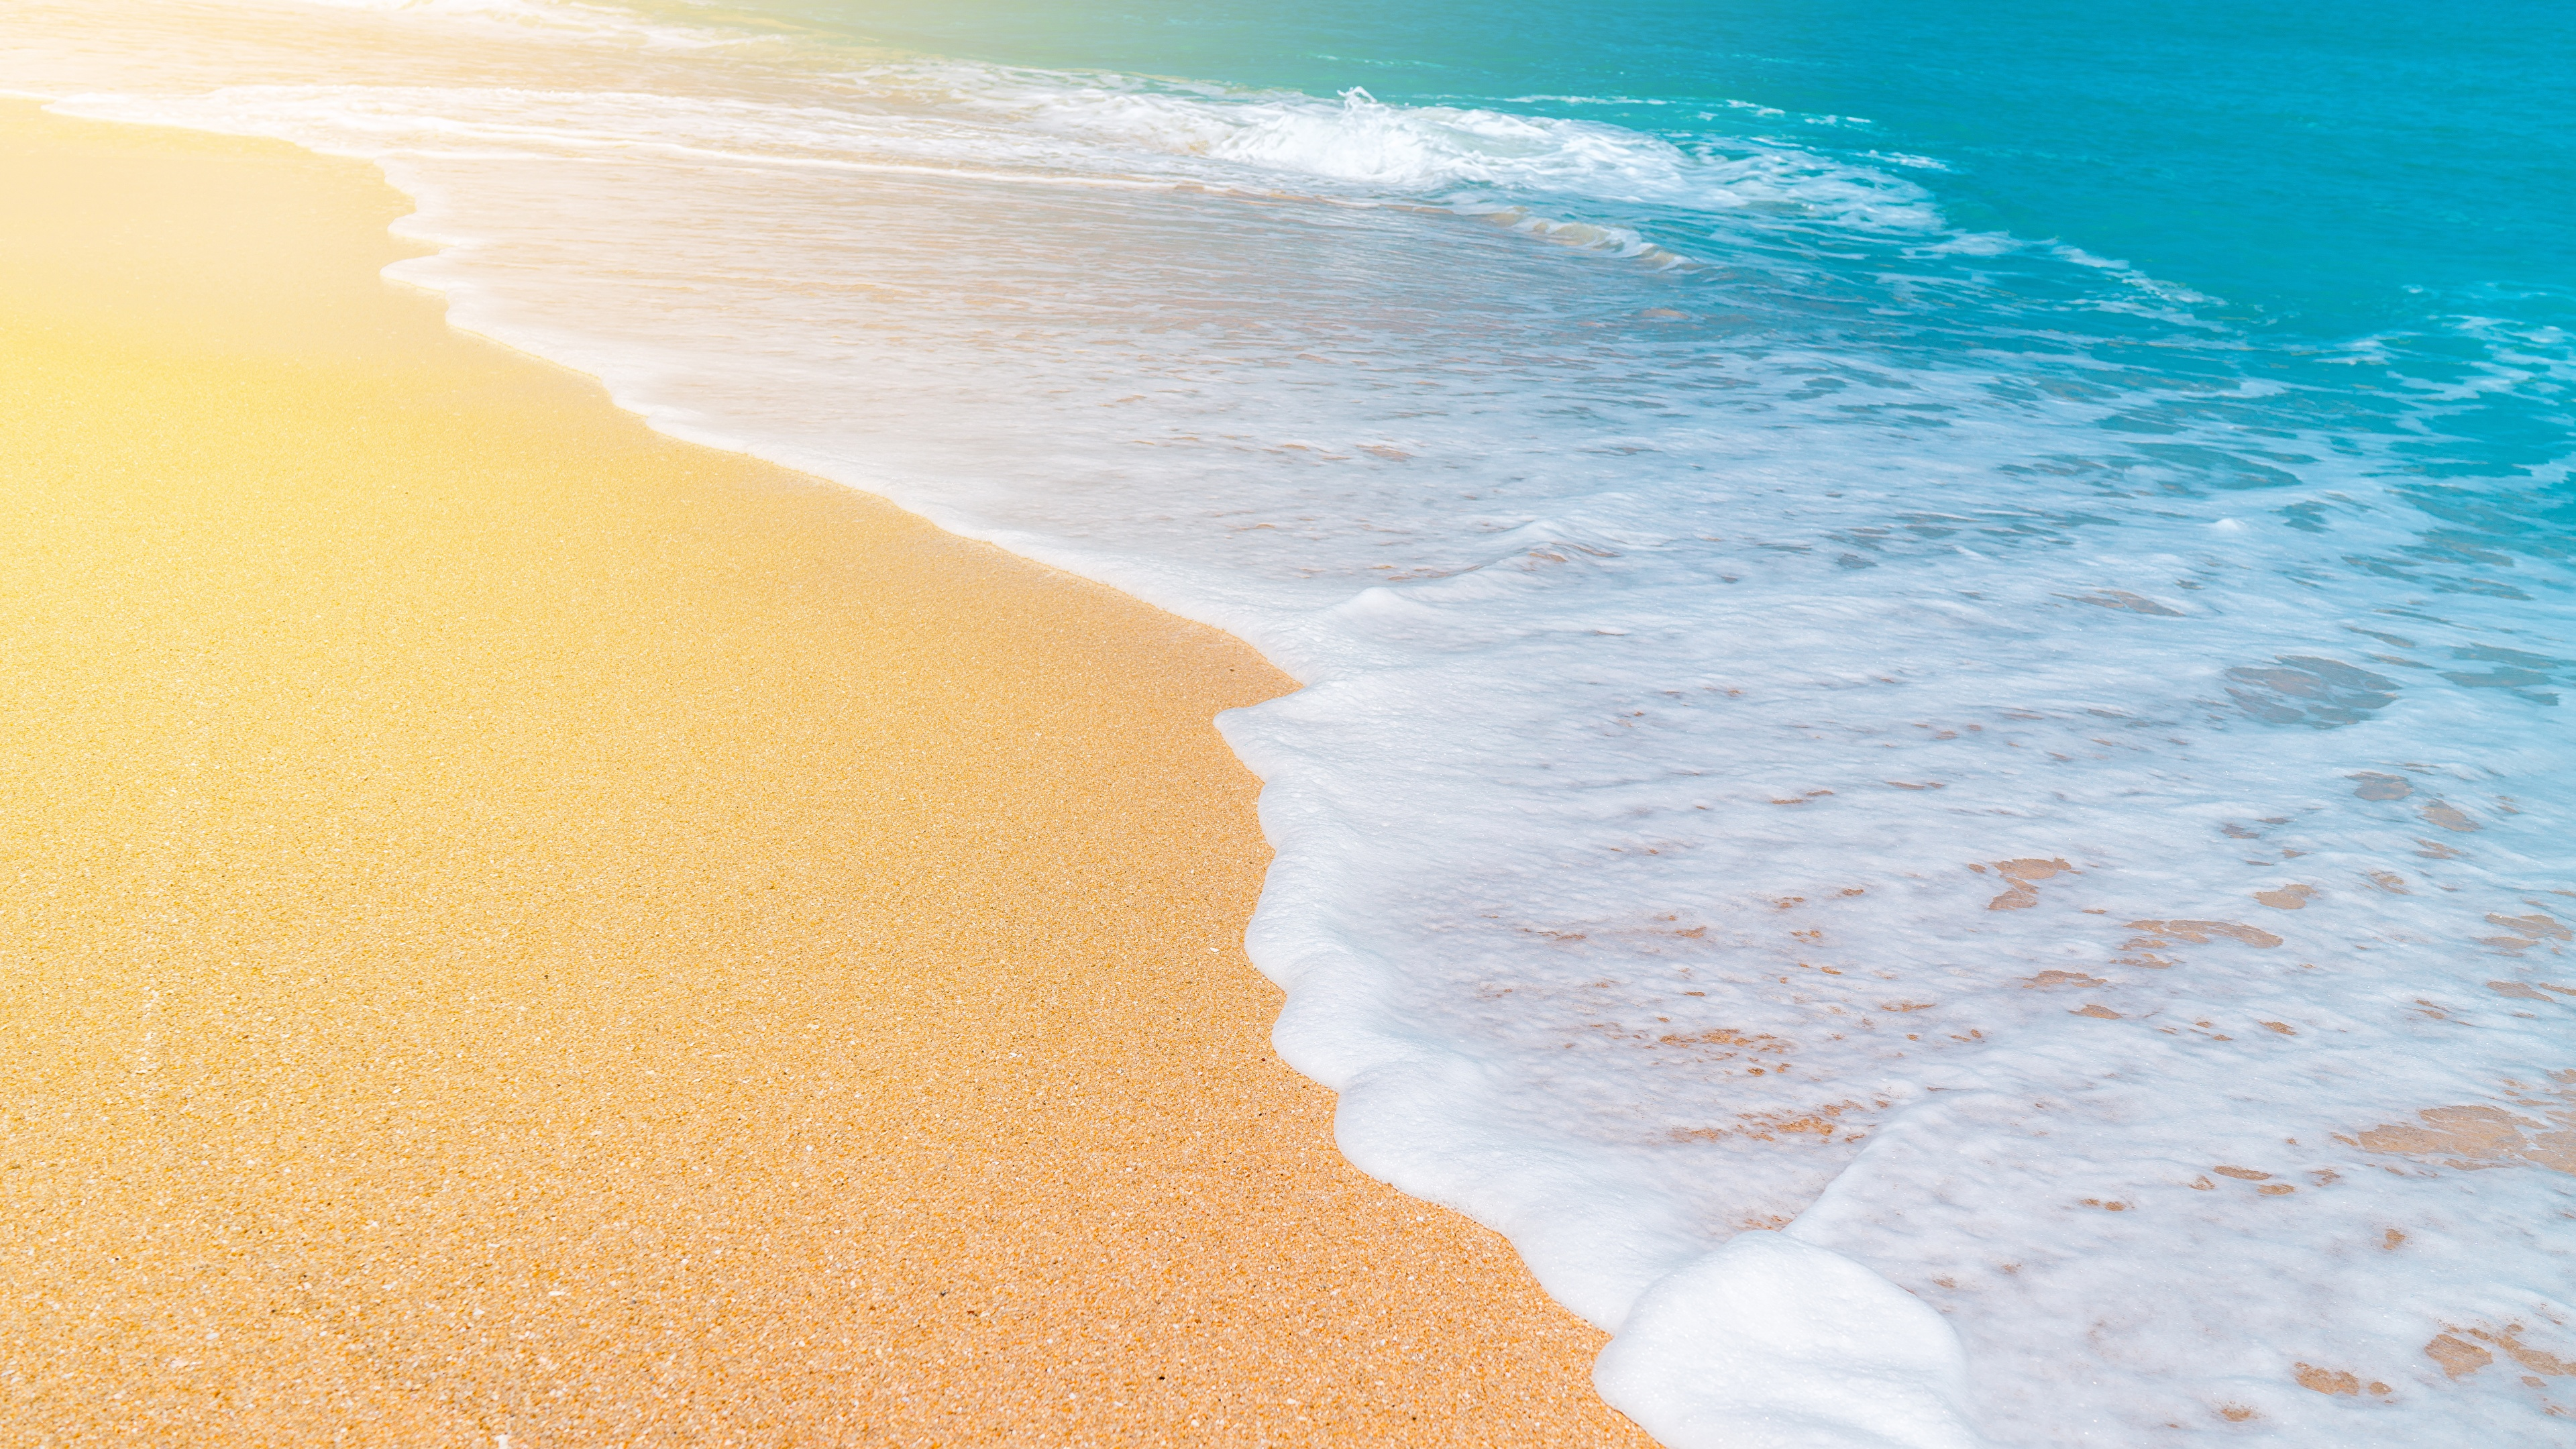 Pictures Sea Nature Sand Waves Foam 3840x2160